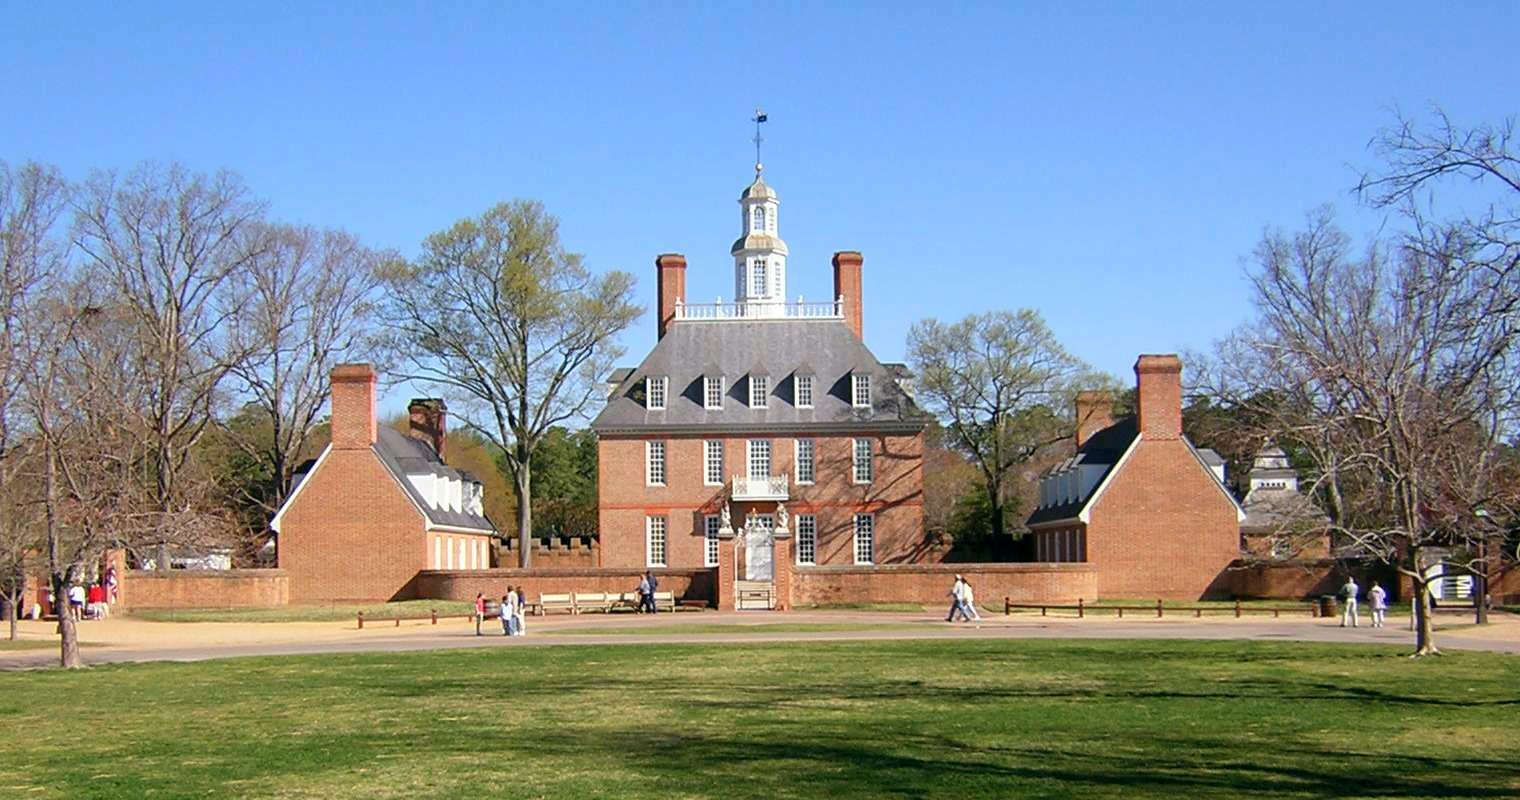 The Governor's Palace at Colonial Williamsburg (Virginia), which was originally constructed in the early 18th century, provides a visual example of Georgian-style architecture. The original palace burned down in 1781 and was reconstructed during the 1930s.